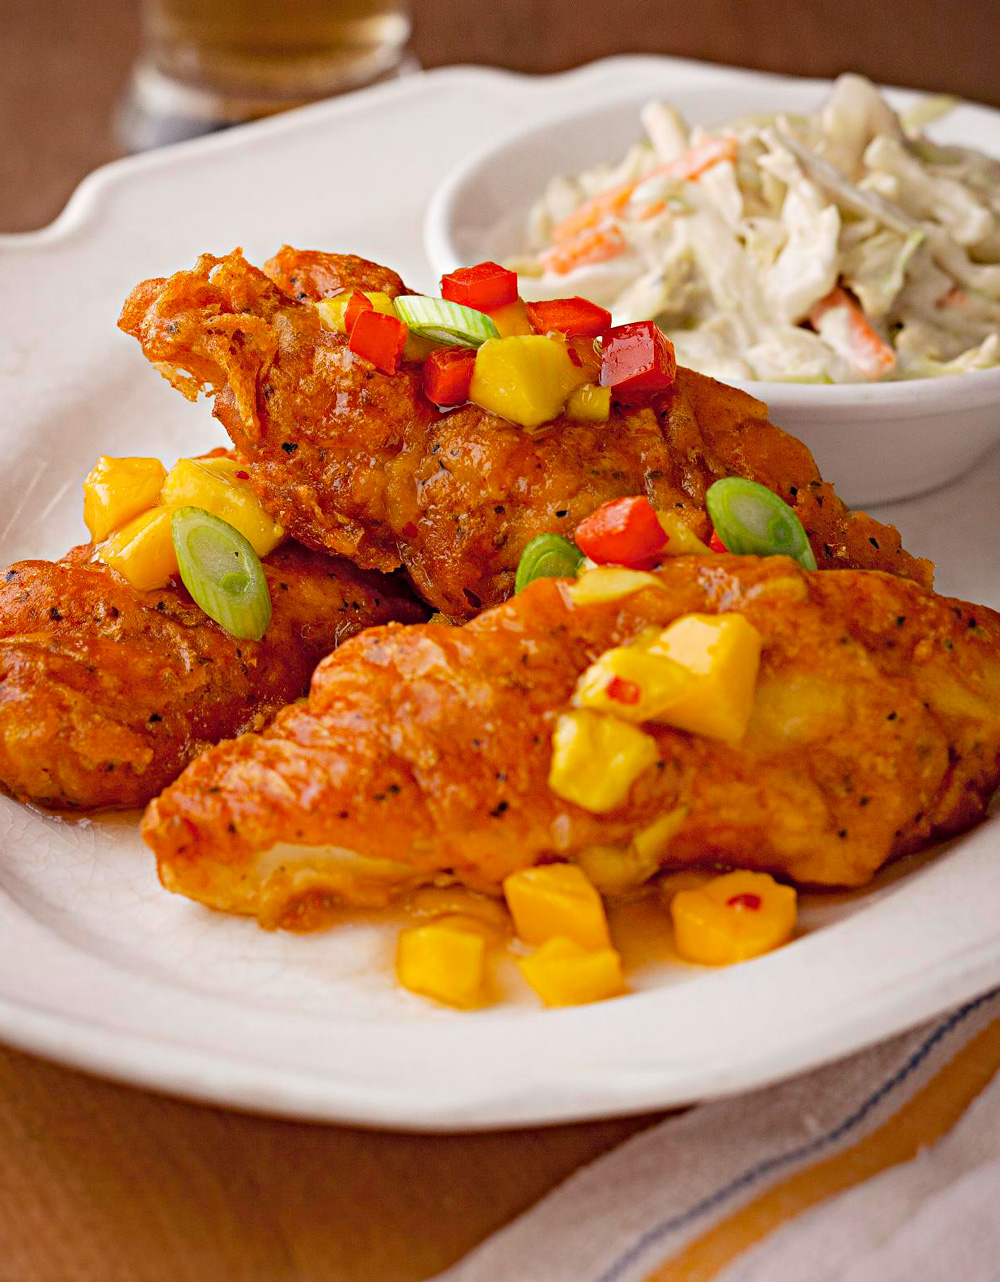 Crispy Beer Batter Fried Walleye with Mango Sweet-and-Sour Sauce